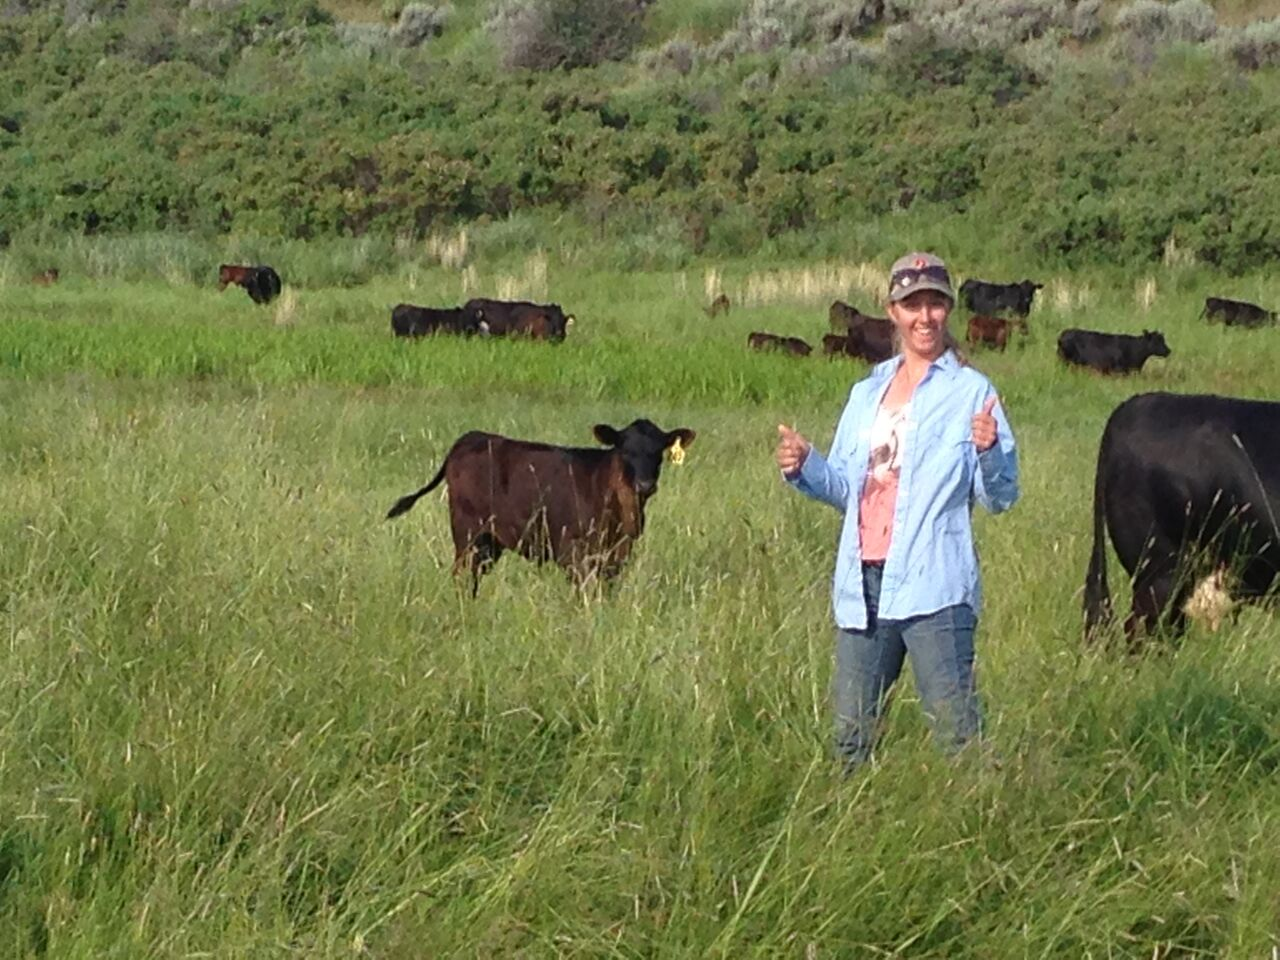 The cattle were quite comfortable with our continued appearances.